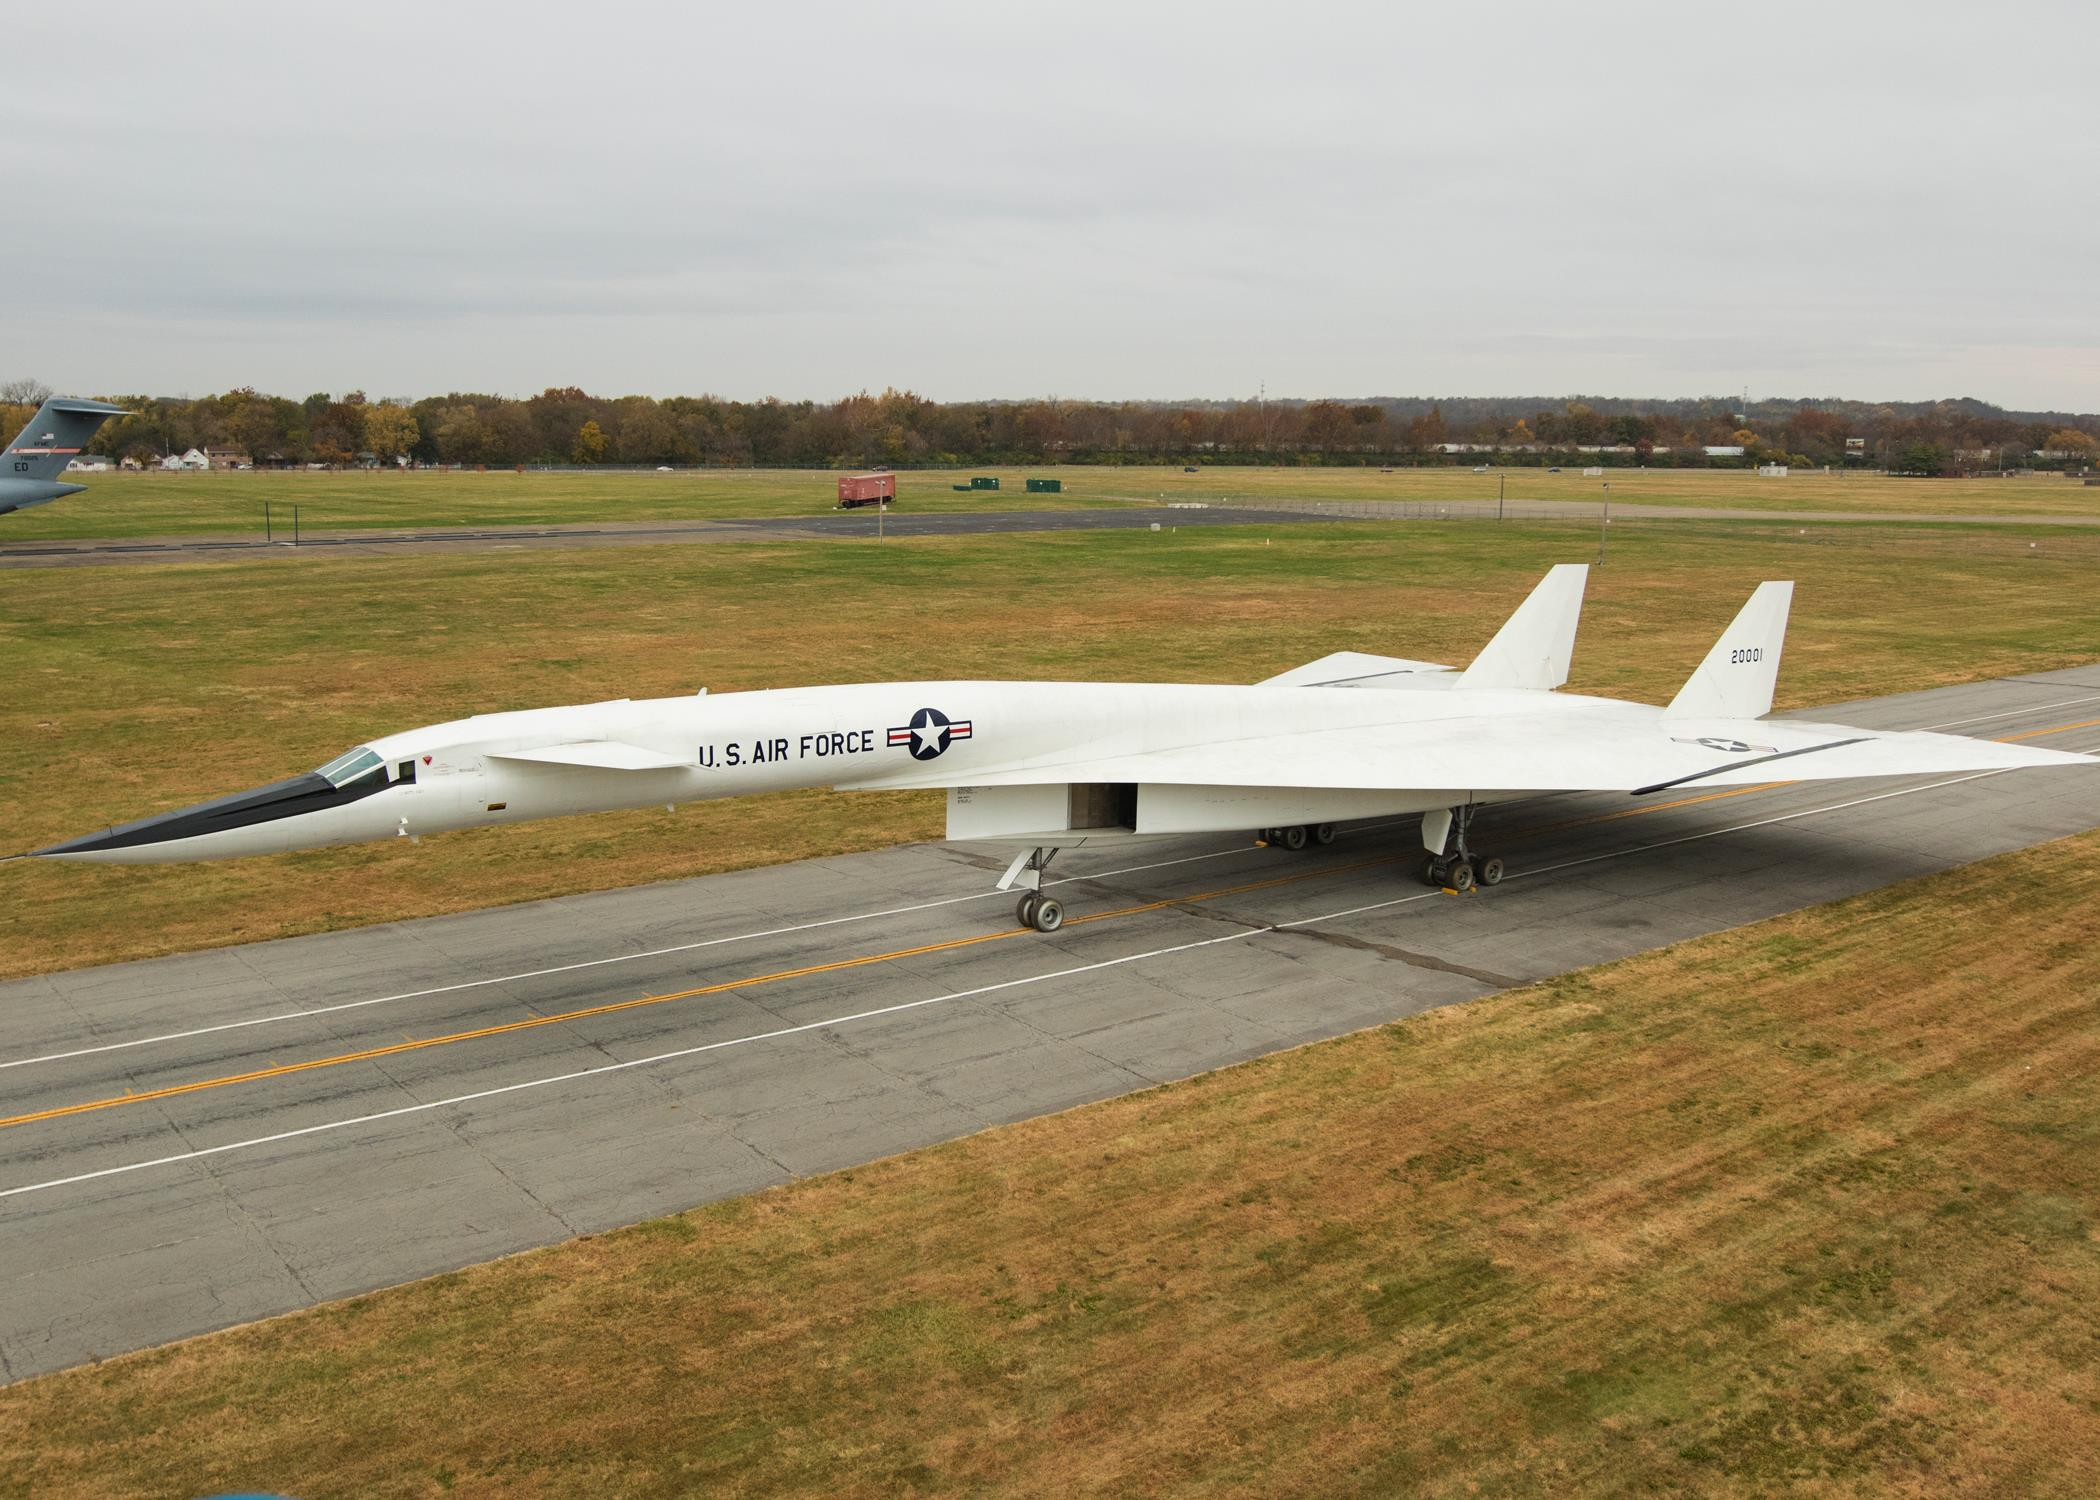 National Air Force Museum >> North American XB-70 Valkyrie > National Museum of the US Air Force™ > Display